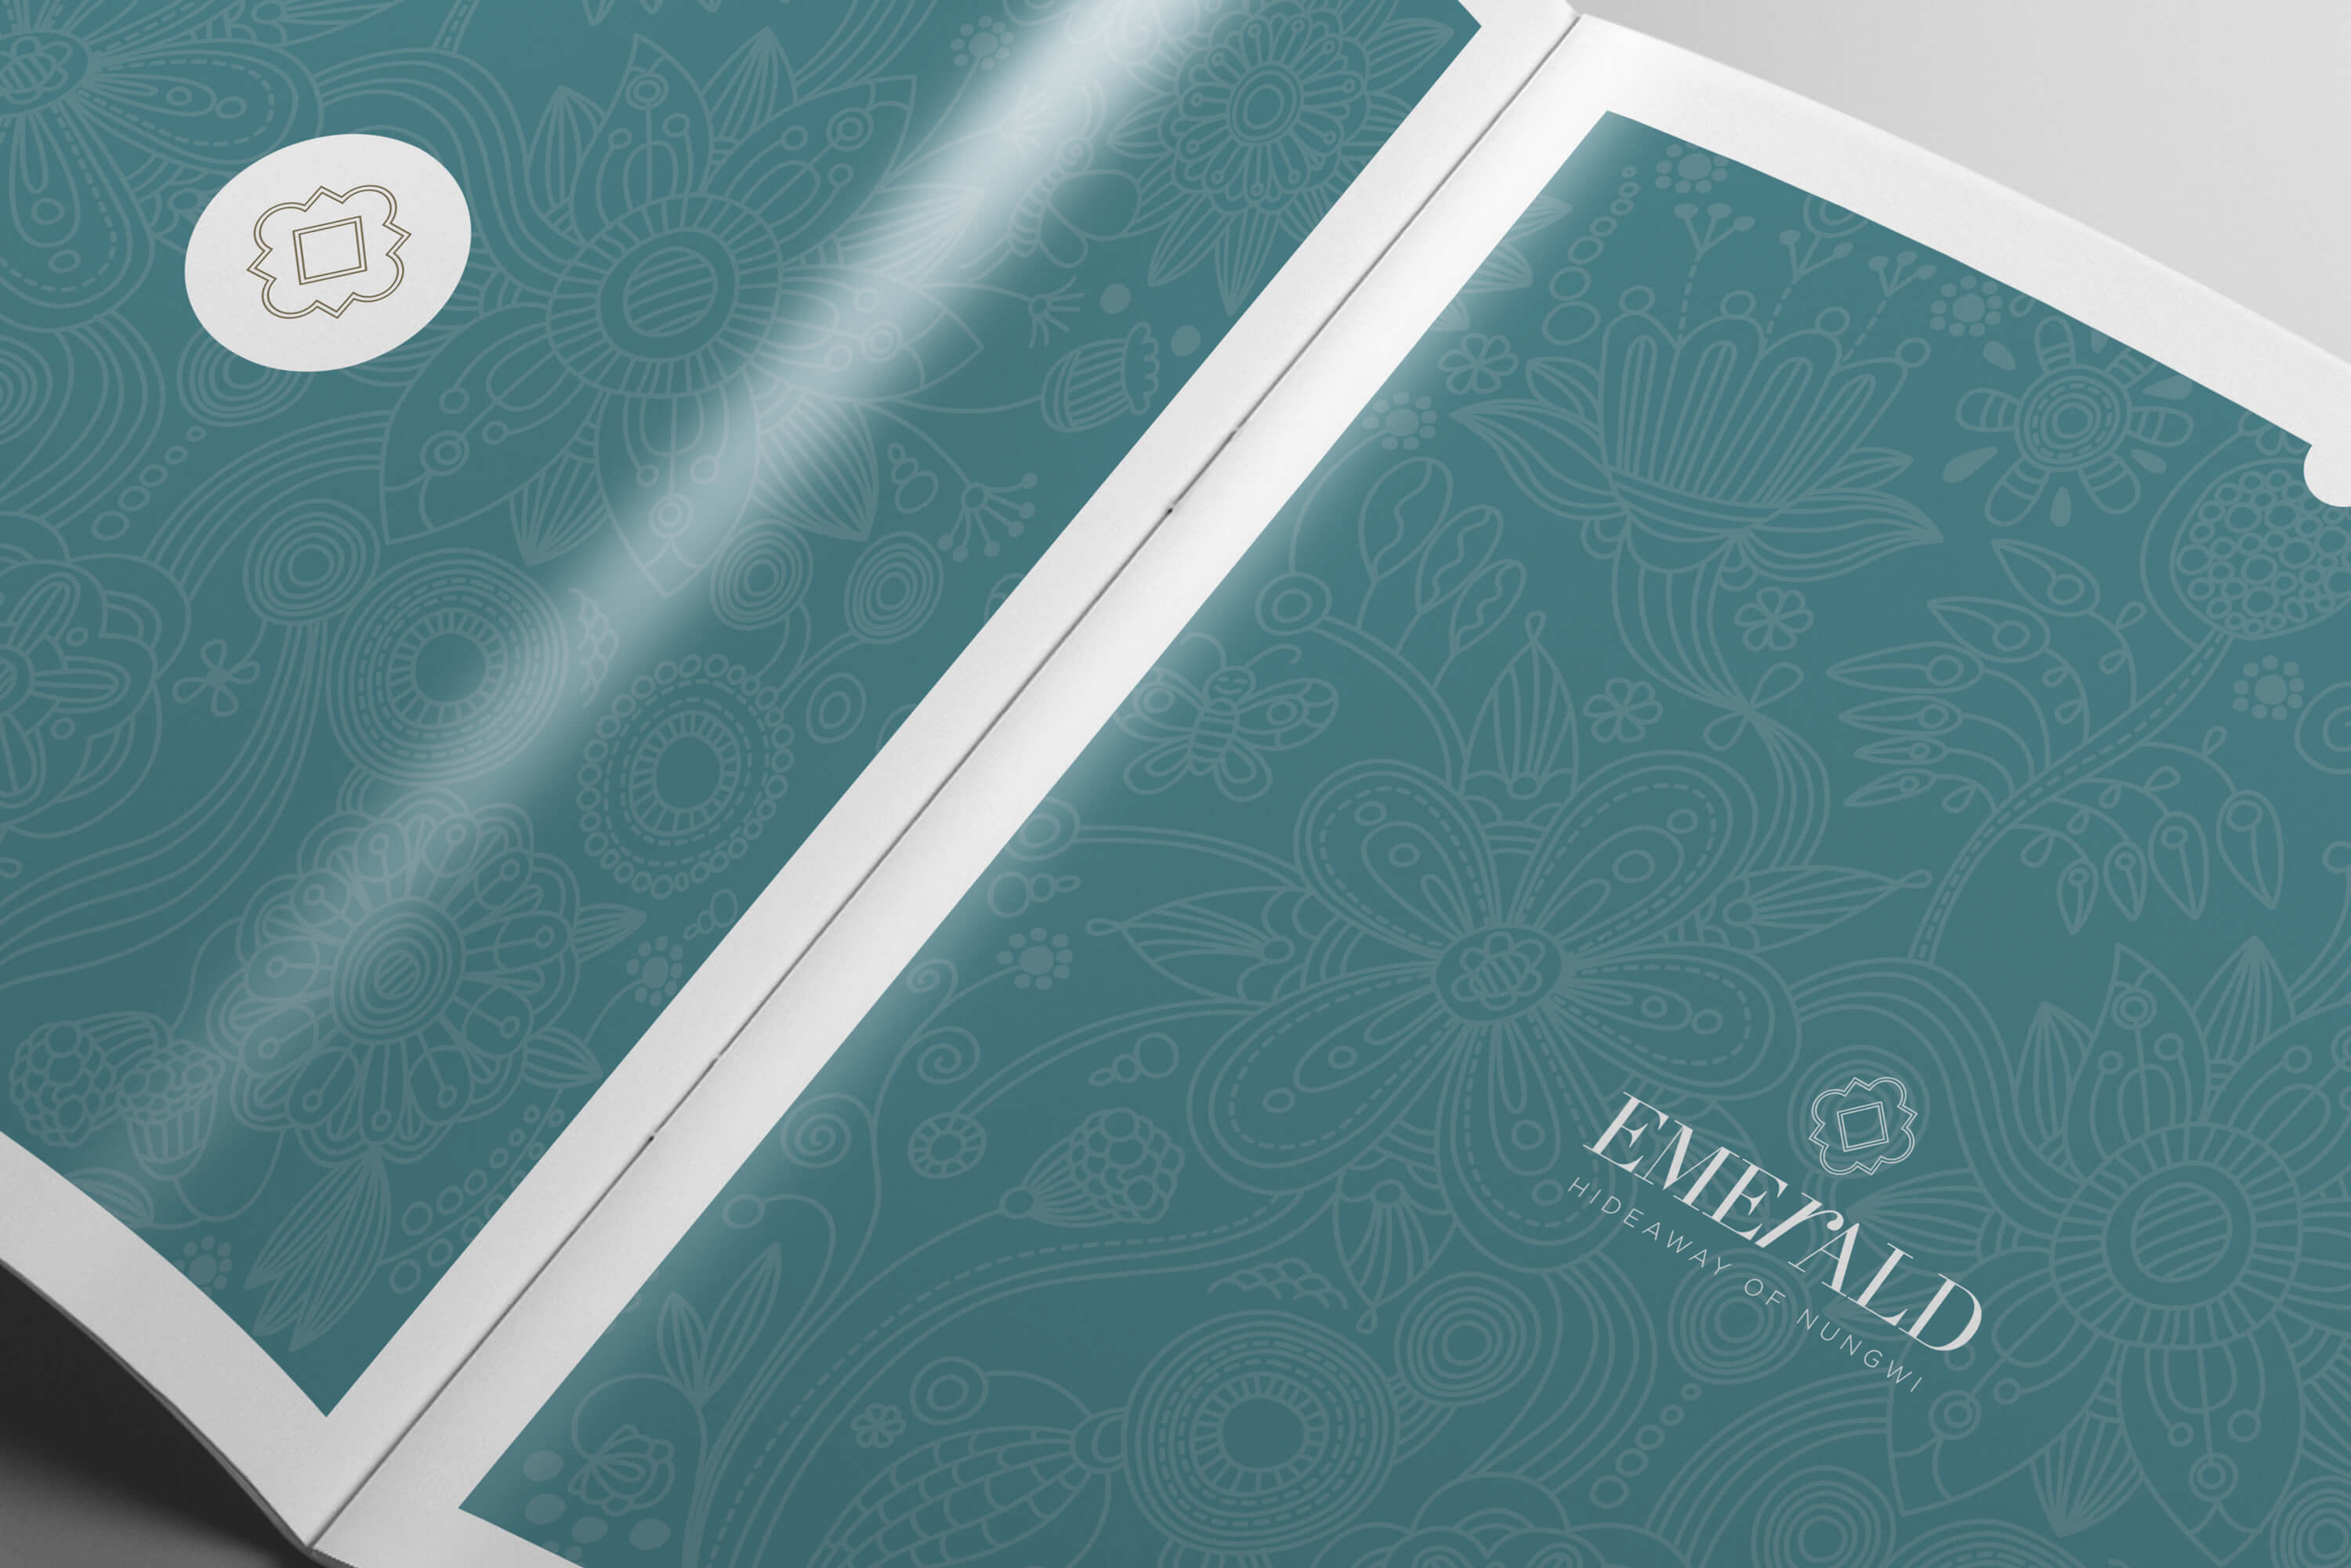 Open copy of the JLL Emerald Resorts corporate brochure showing pattern detail